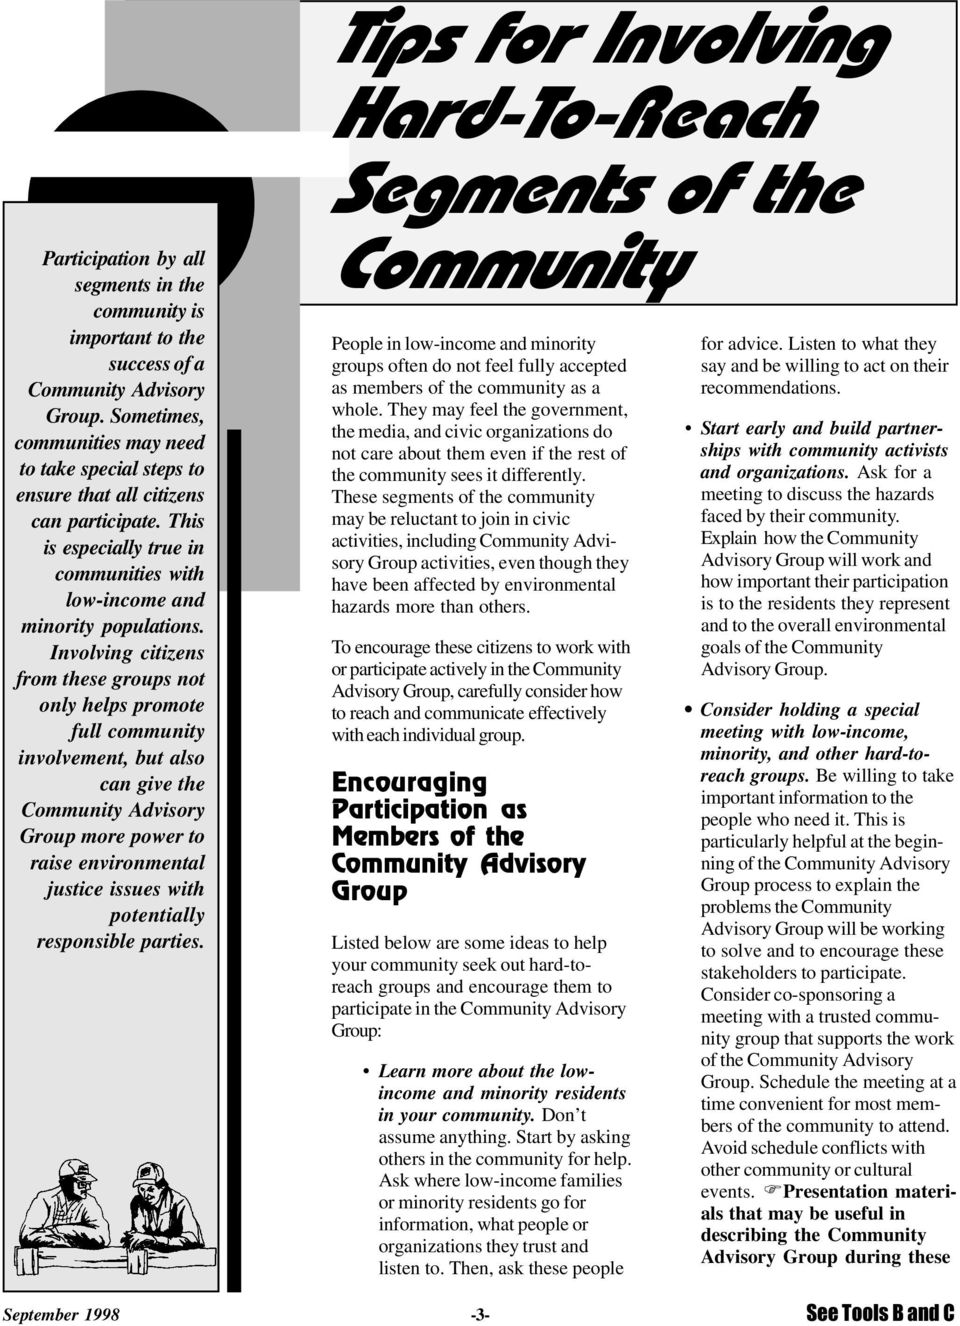 Involving citizens from these groups not only helps promote full community involvement, but also can give the Community Advisory Group more power to raise environmental justice issues with